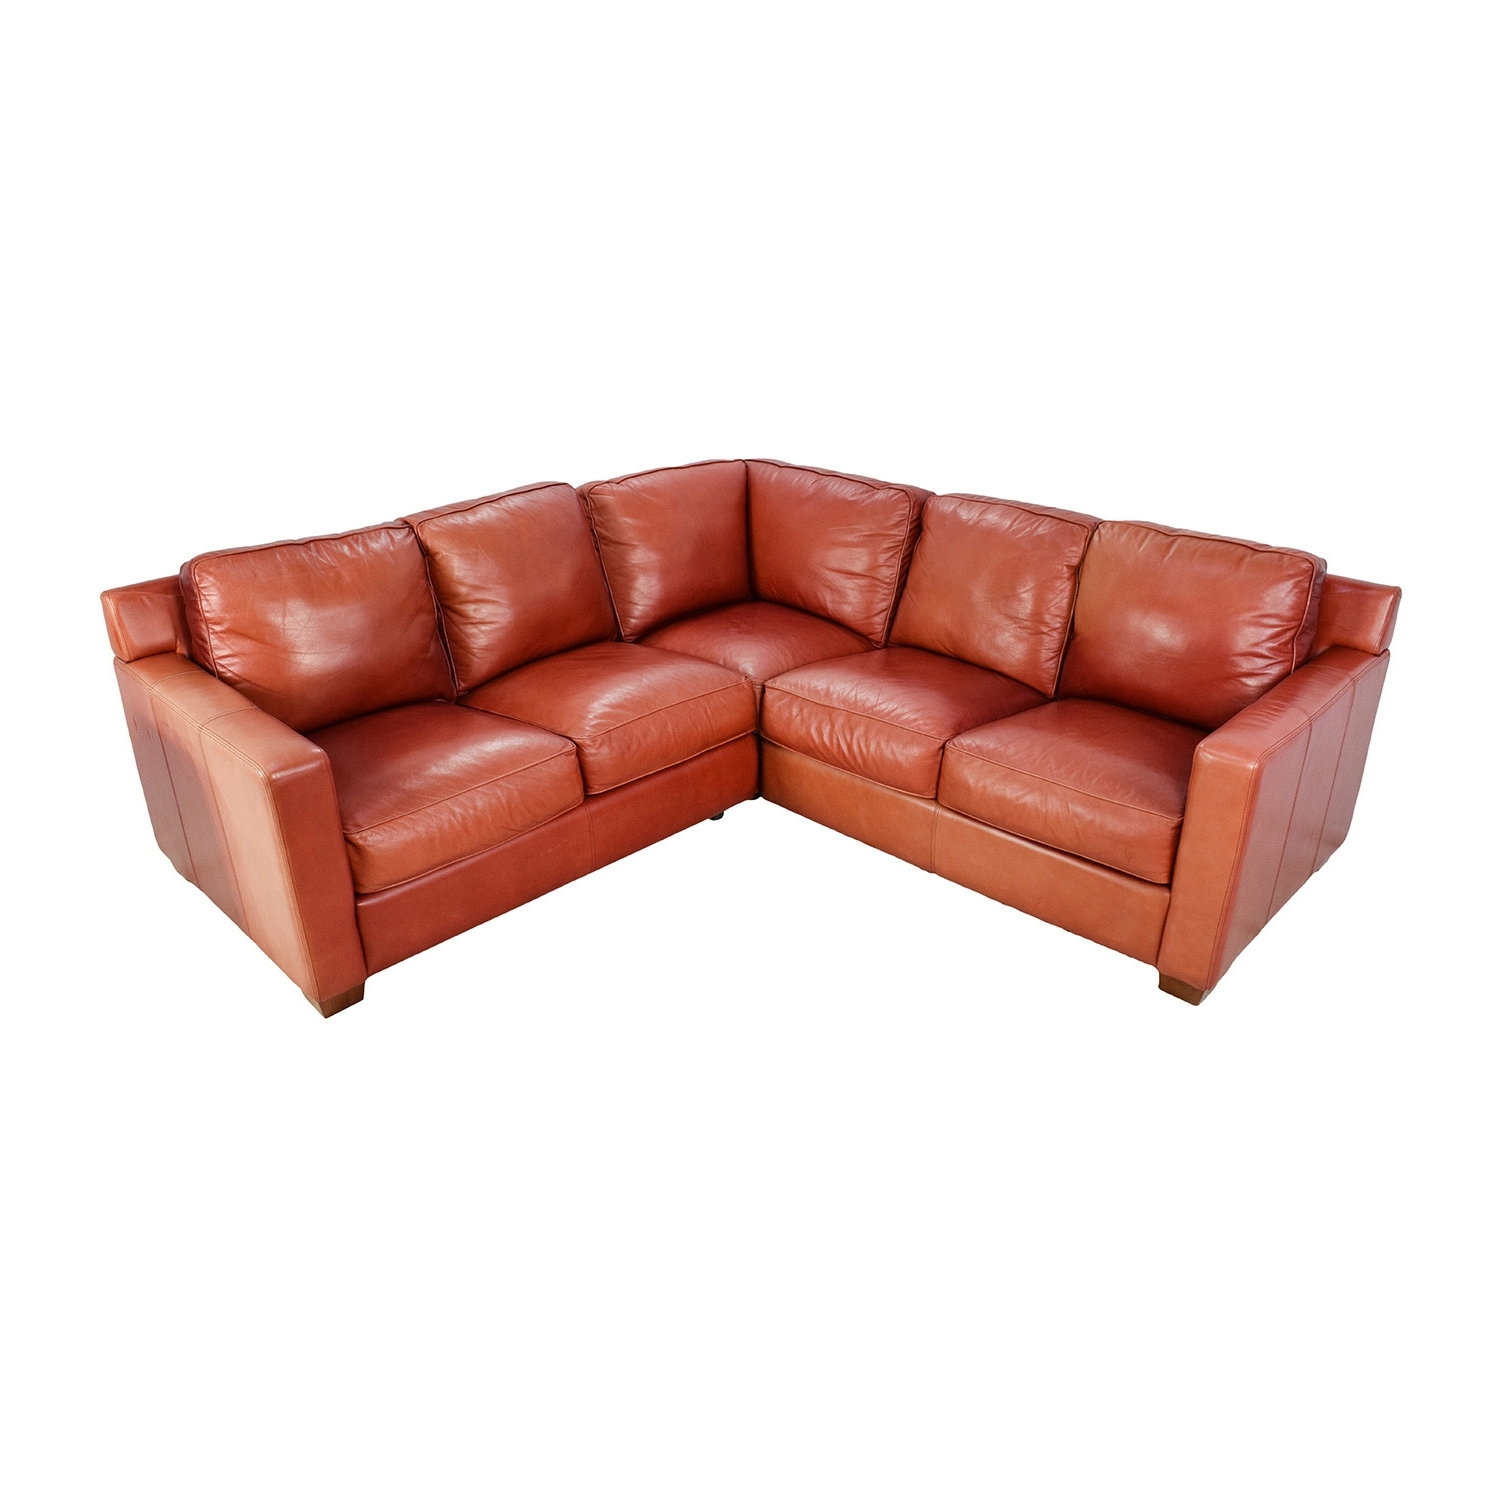 [%68% Off – Thomasville Thomasville Red Leather Sectional / Sofas Pertaining To Current Thomasville Sectional Sofas|thomasville Sectional Sofas With Best And Newest 68% Off – Thomasville Thomasville Red Leather Sectional / Sofas|most Current Thomasville Sectional Sofas With 68% Off – Thomasville Thomasville Red Leather Sectional / Sofas|recent 68% Off – Thomasville Thomasville Red Leather Sectional / Sofas Intended For Thomasville Sectional Sofas%] (View 13 of 20)